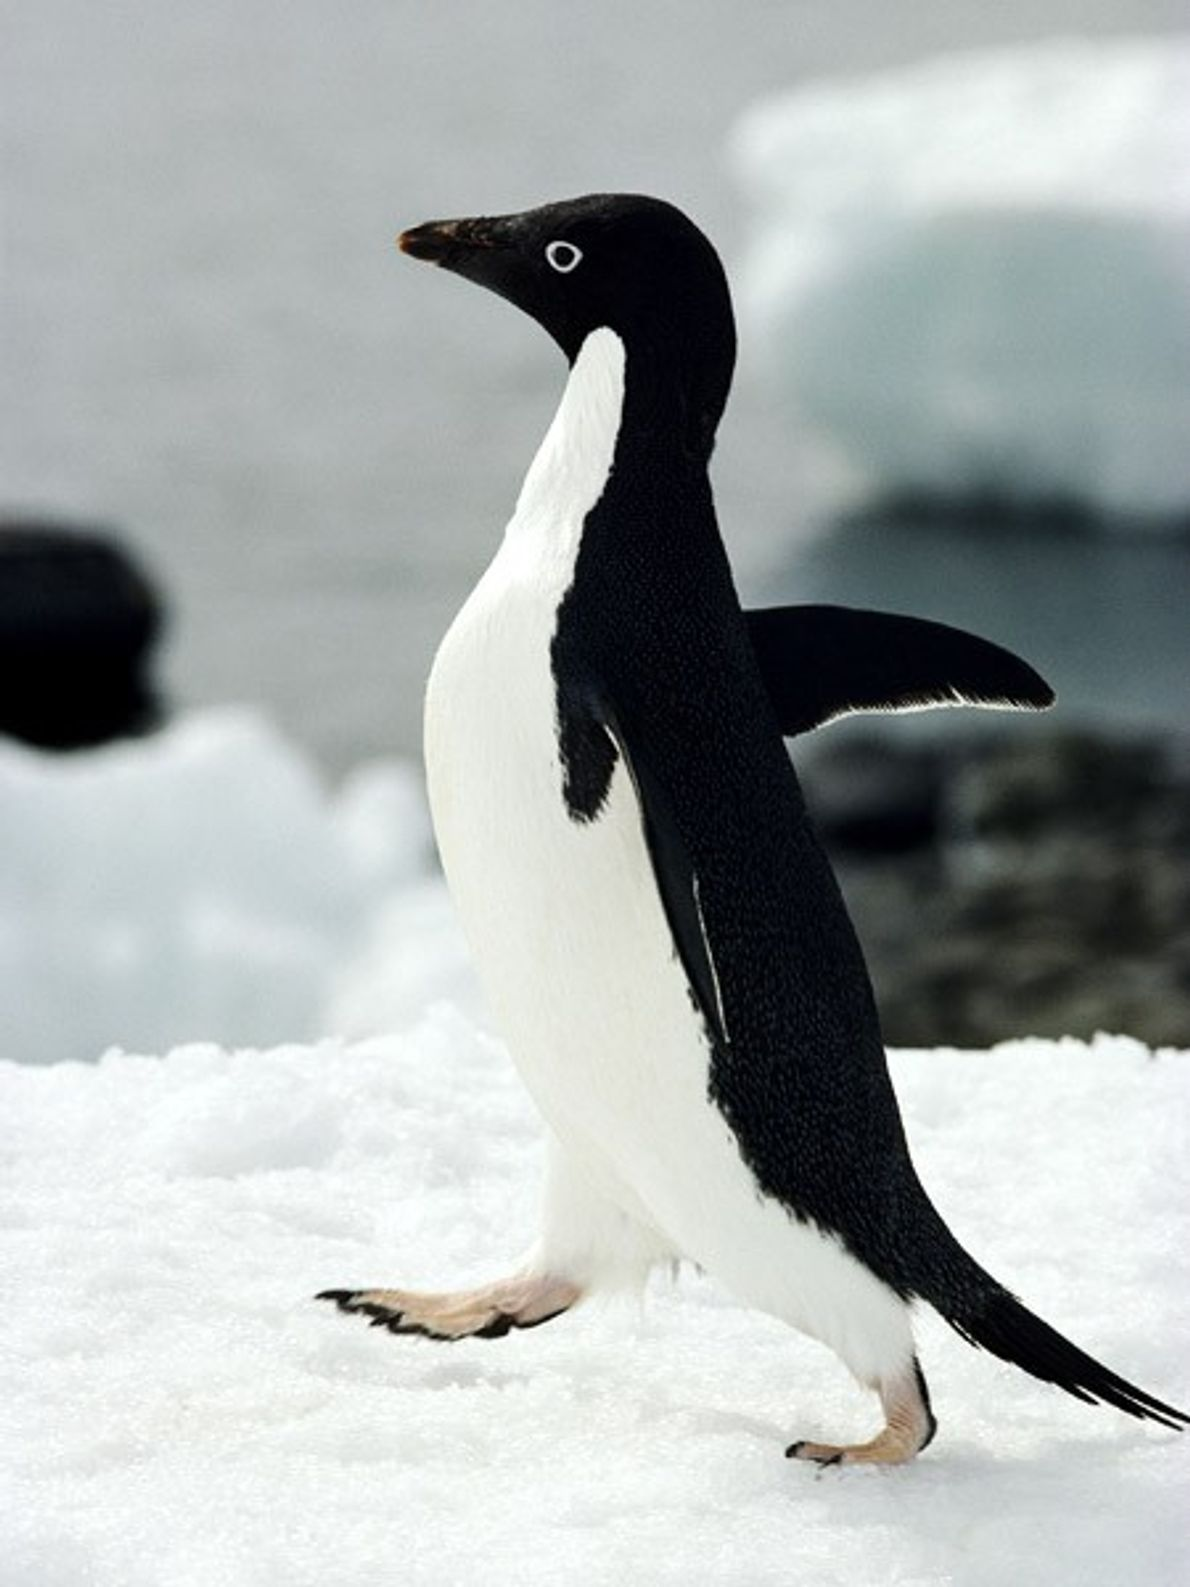 Wings spread, this Adélie penguin waddles through an Antarctic colony. Its black tail gives it a ...